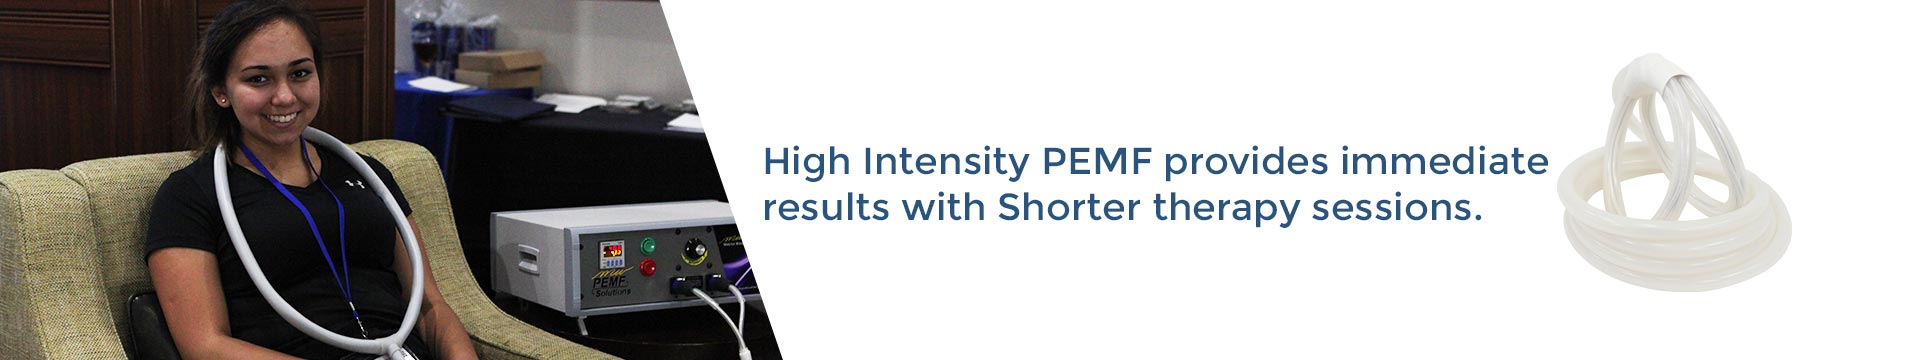 High Intensity PEMF provides immediate results with shorter therapy sessions.